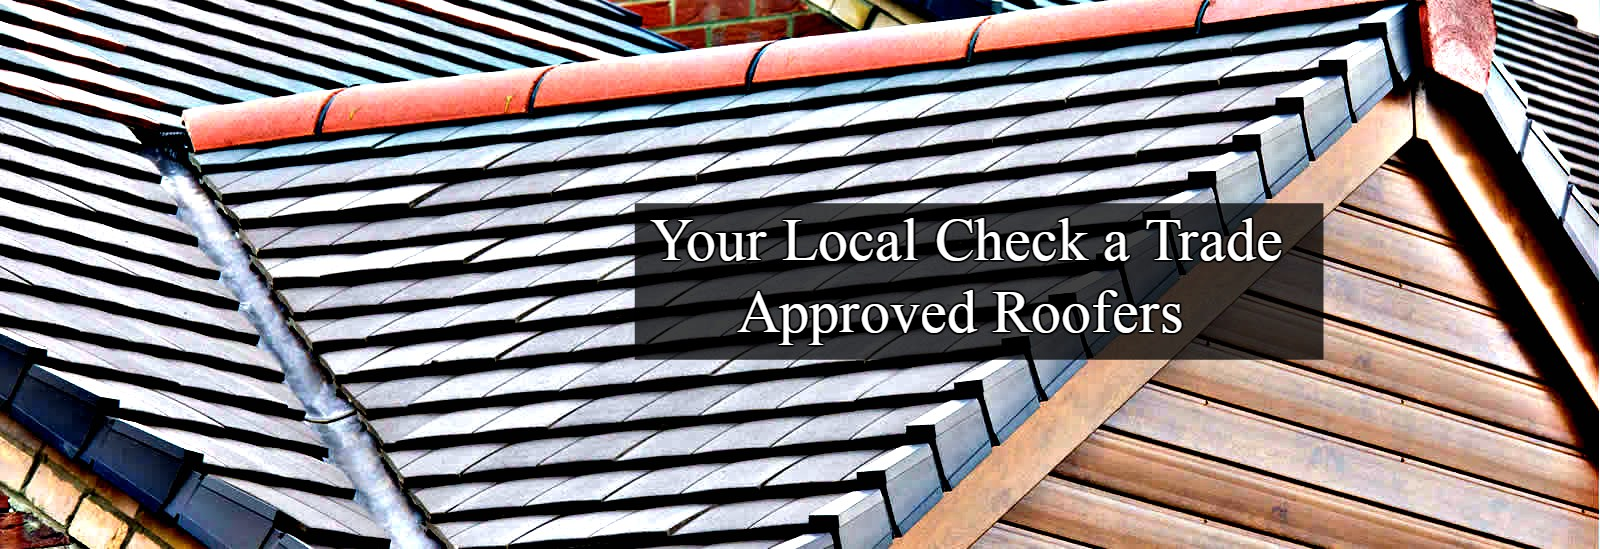 roofing services in Carmarthen